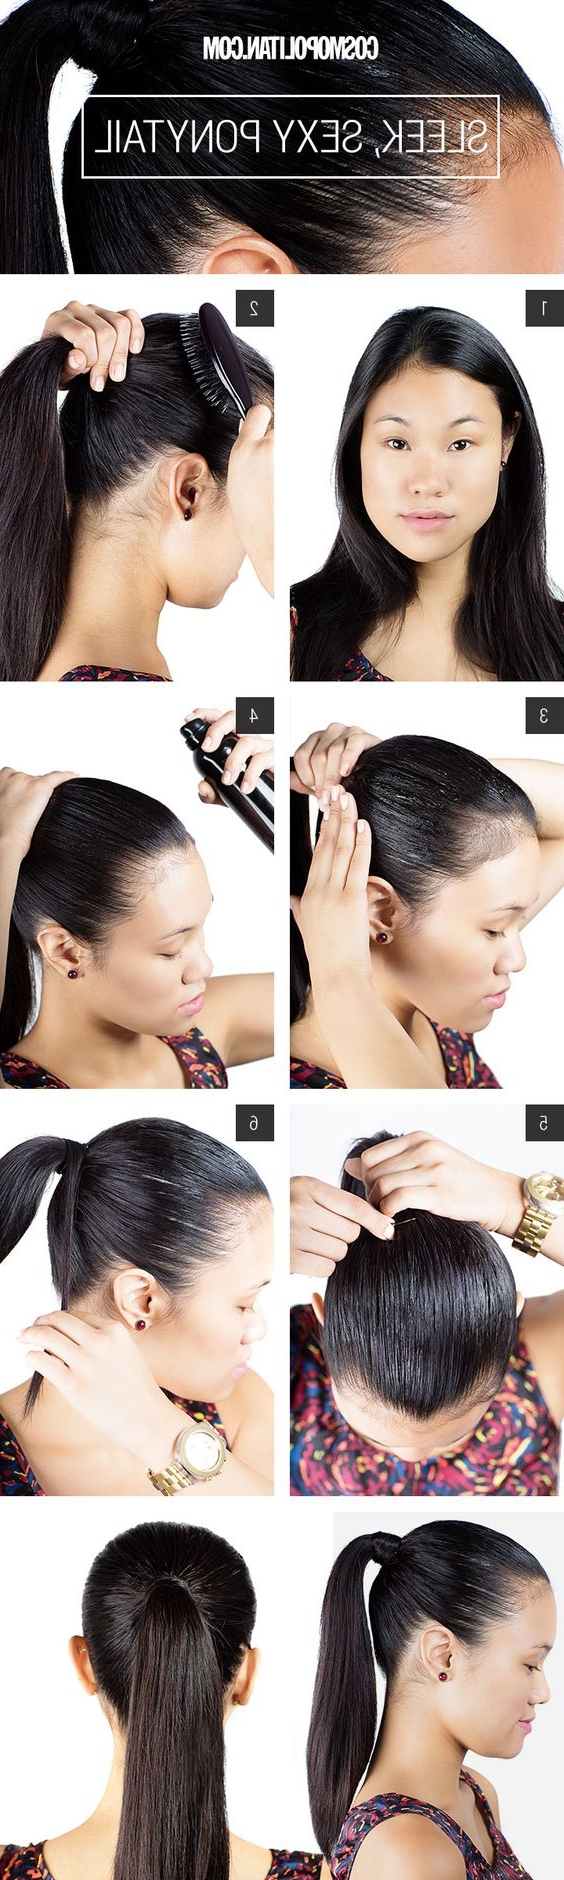 Widely Used Futuristic And Flirty Ponytail Hairstyles In 18 High Ponytail Hairstyles You Need To Try For Spring 2017 – Gurl (View 4 of 20)